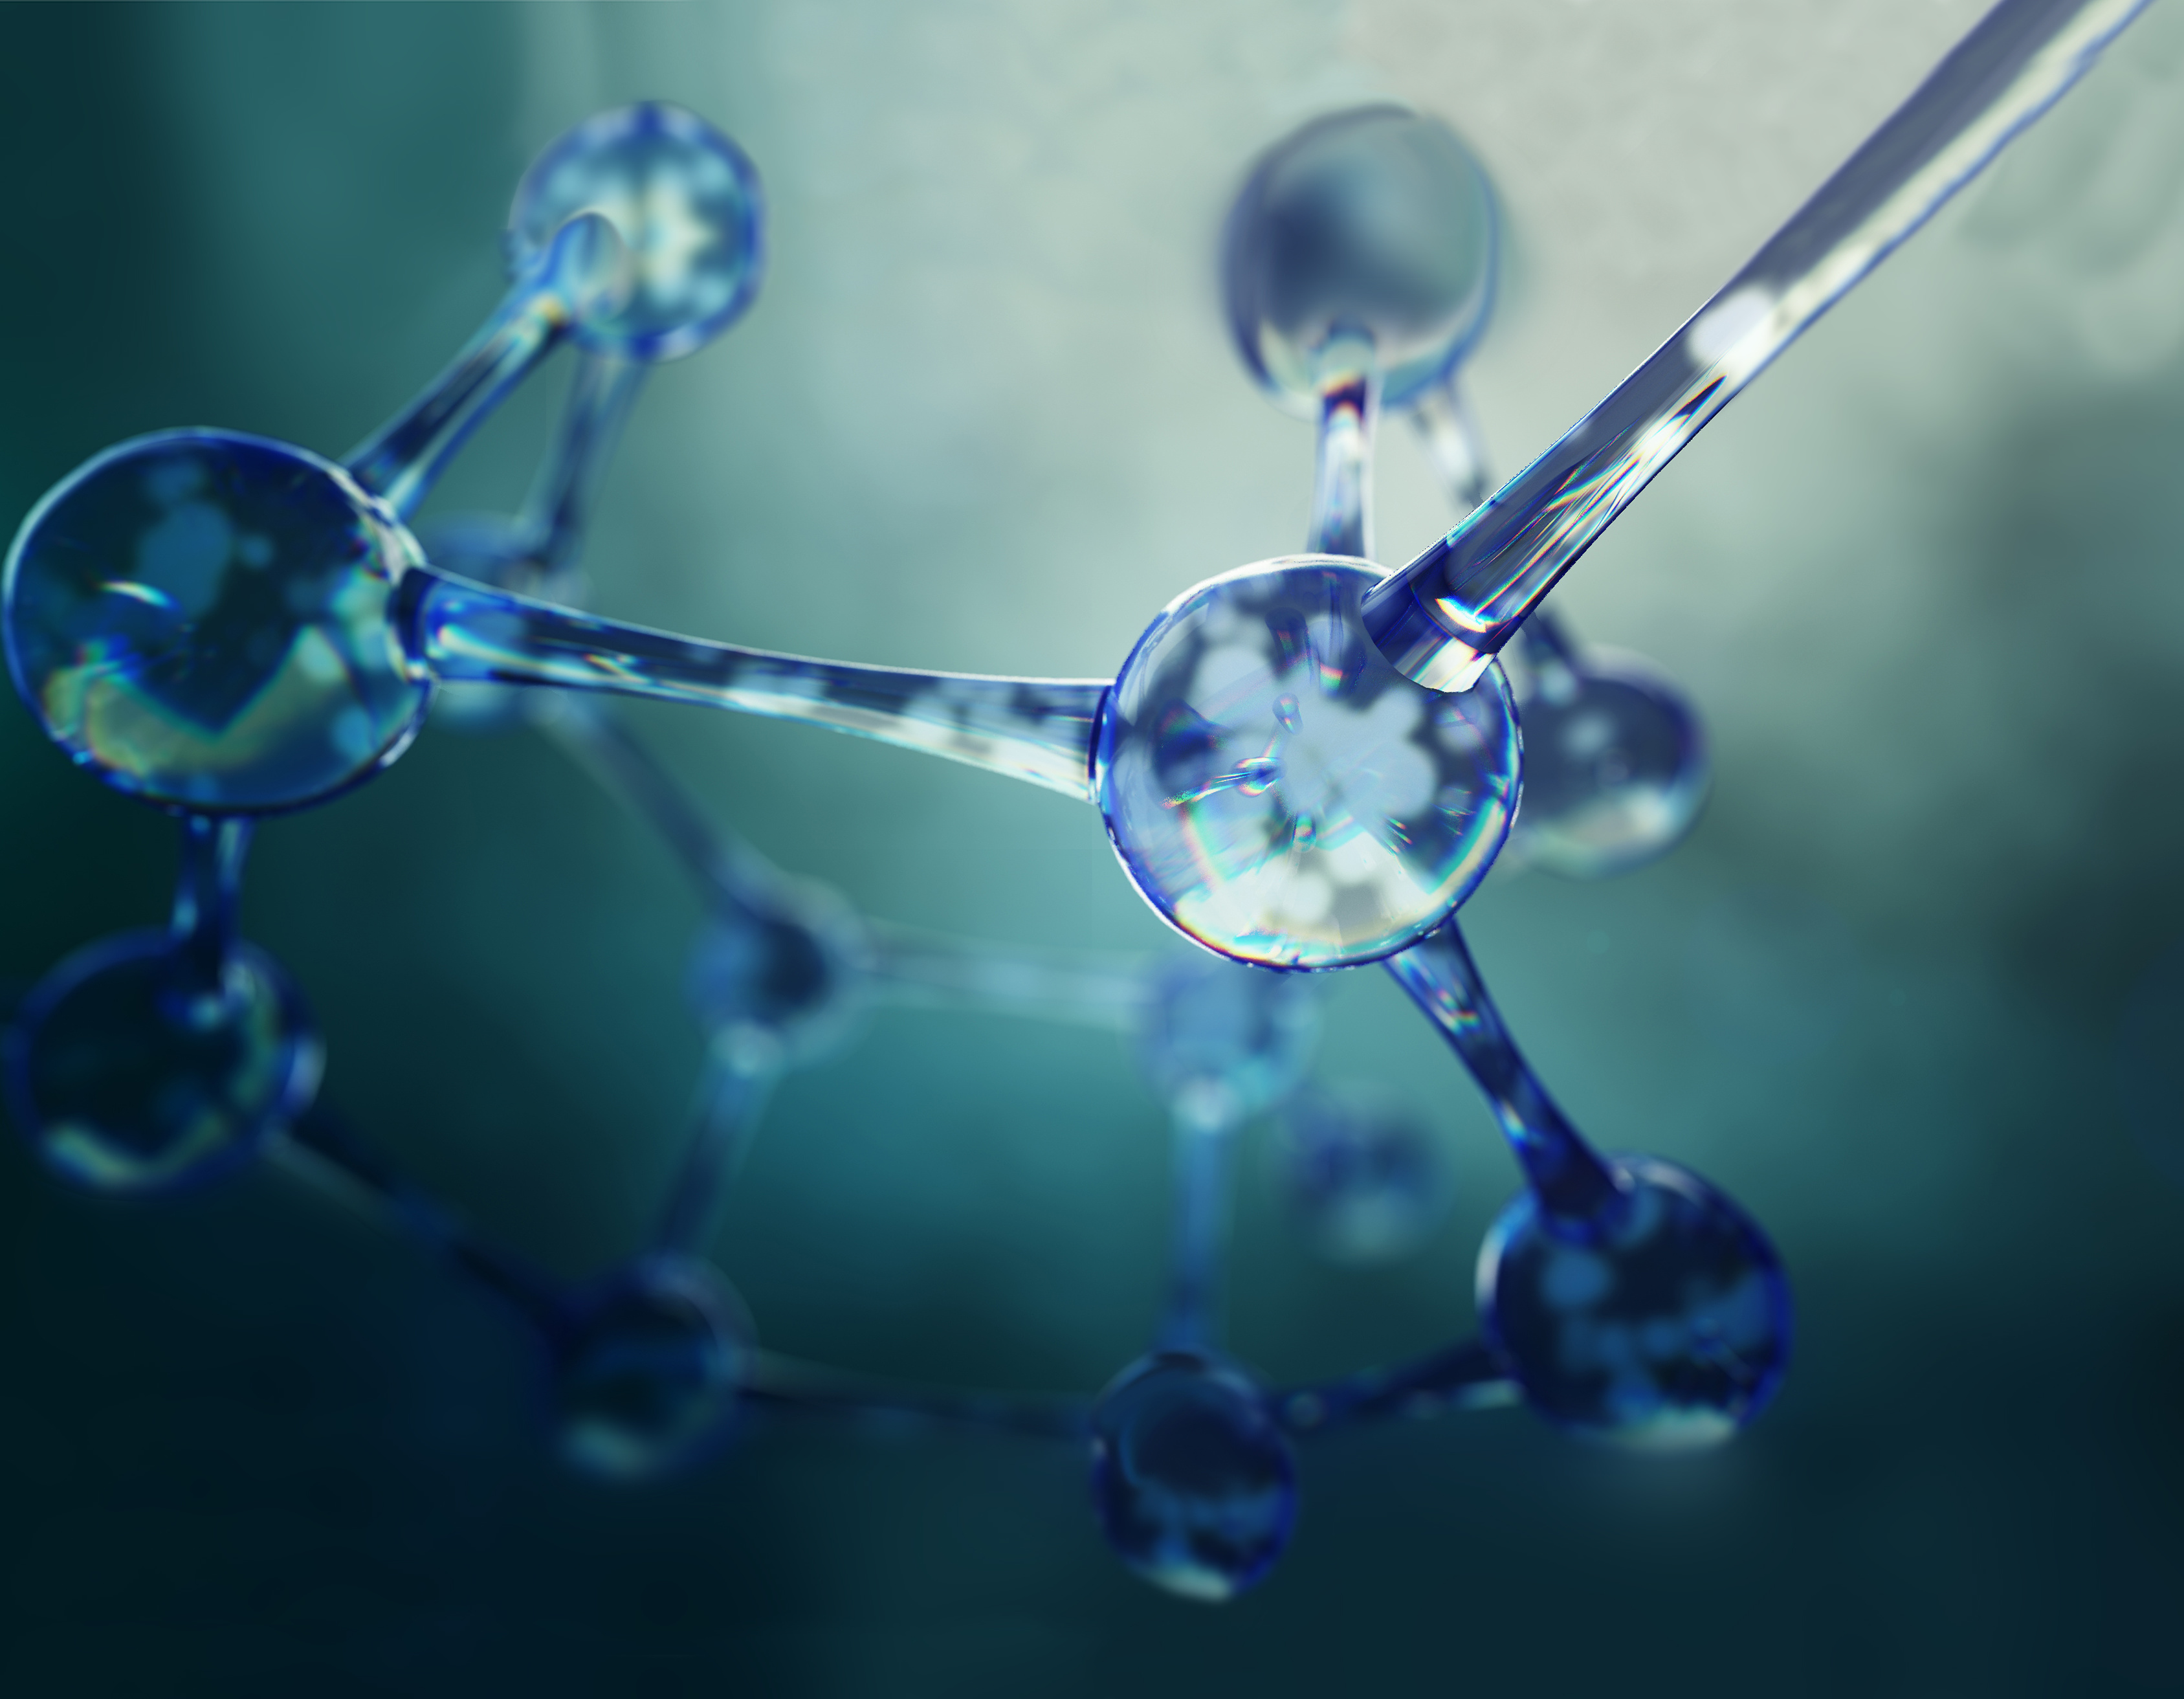 3d illustration of molecule model  science background with